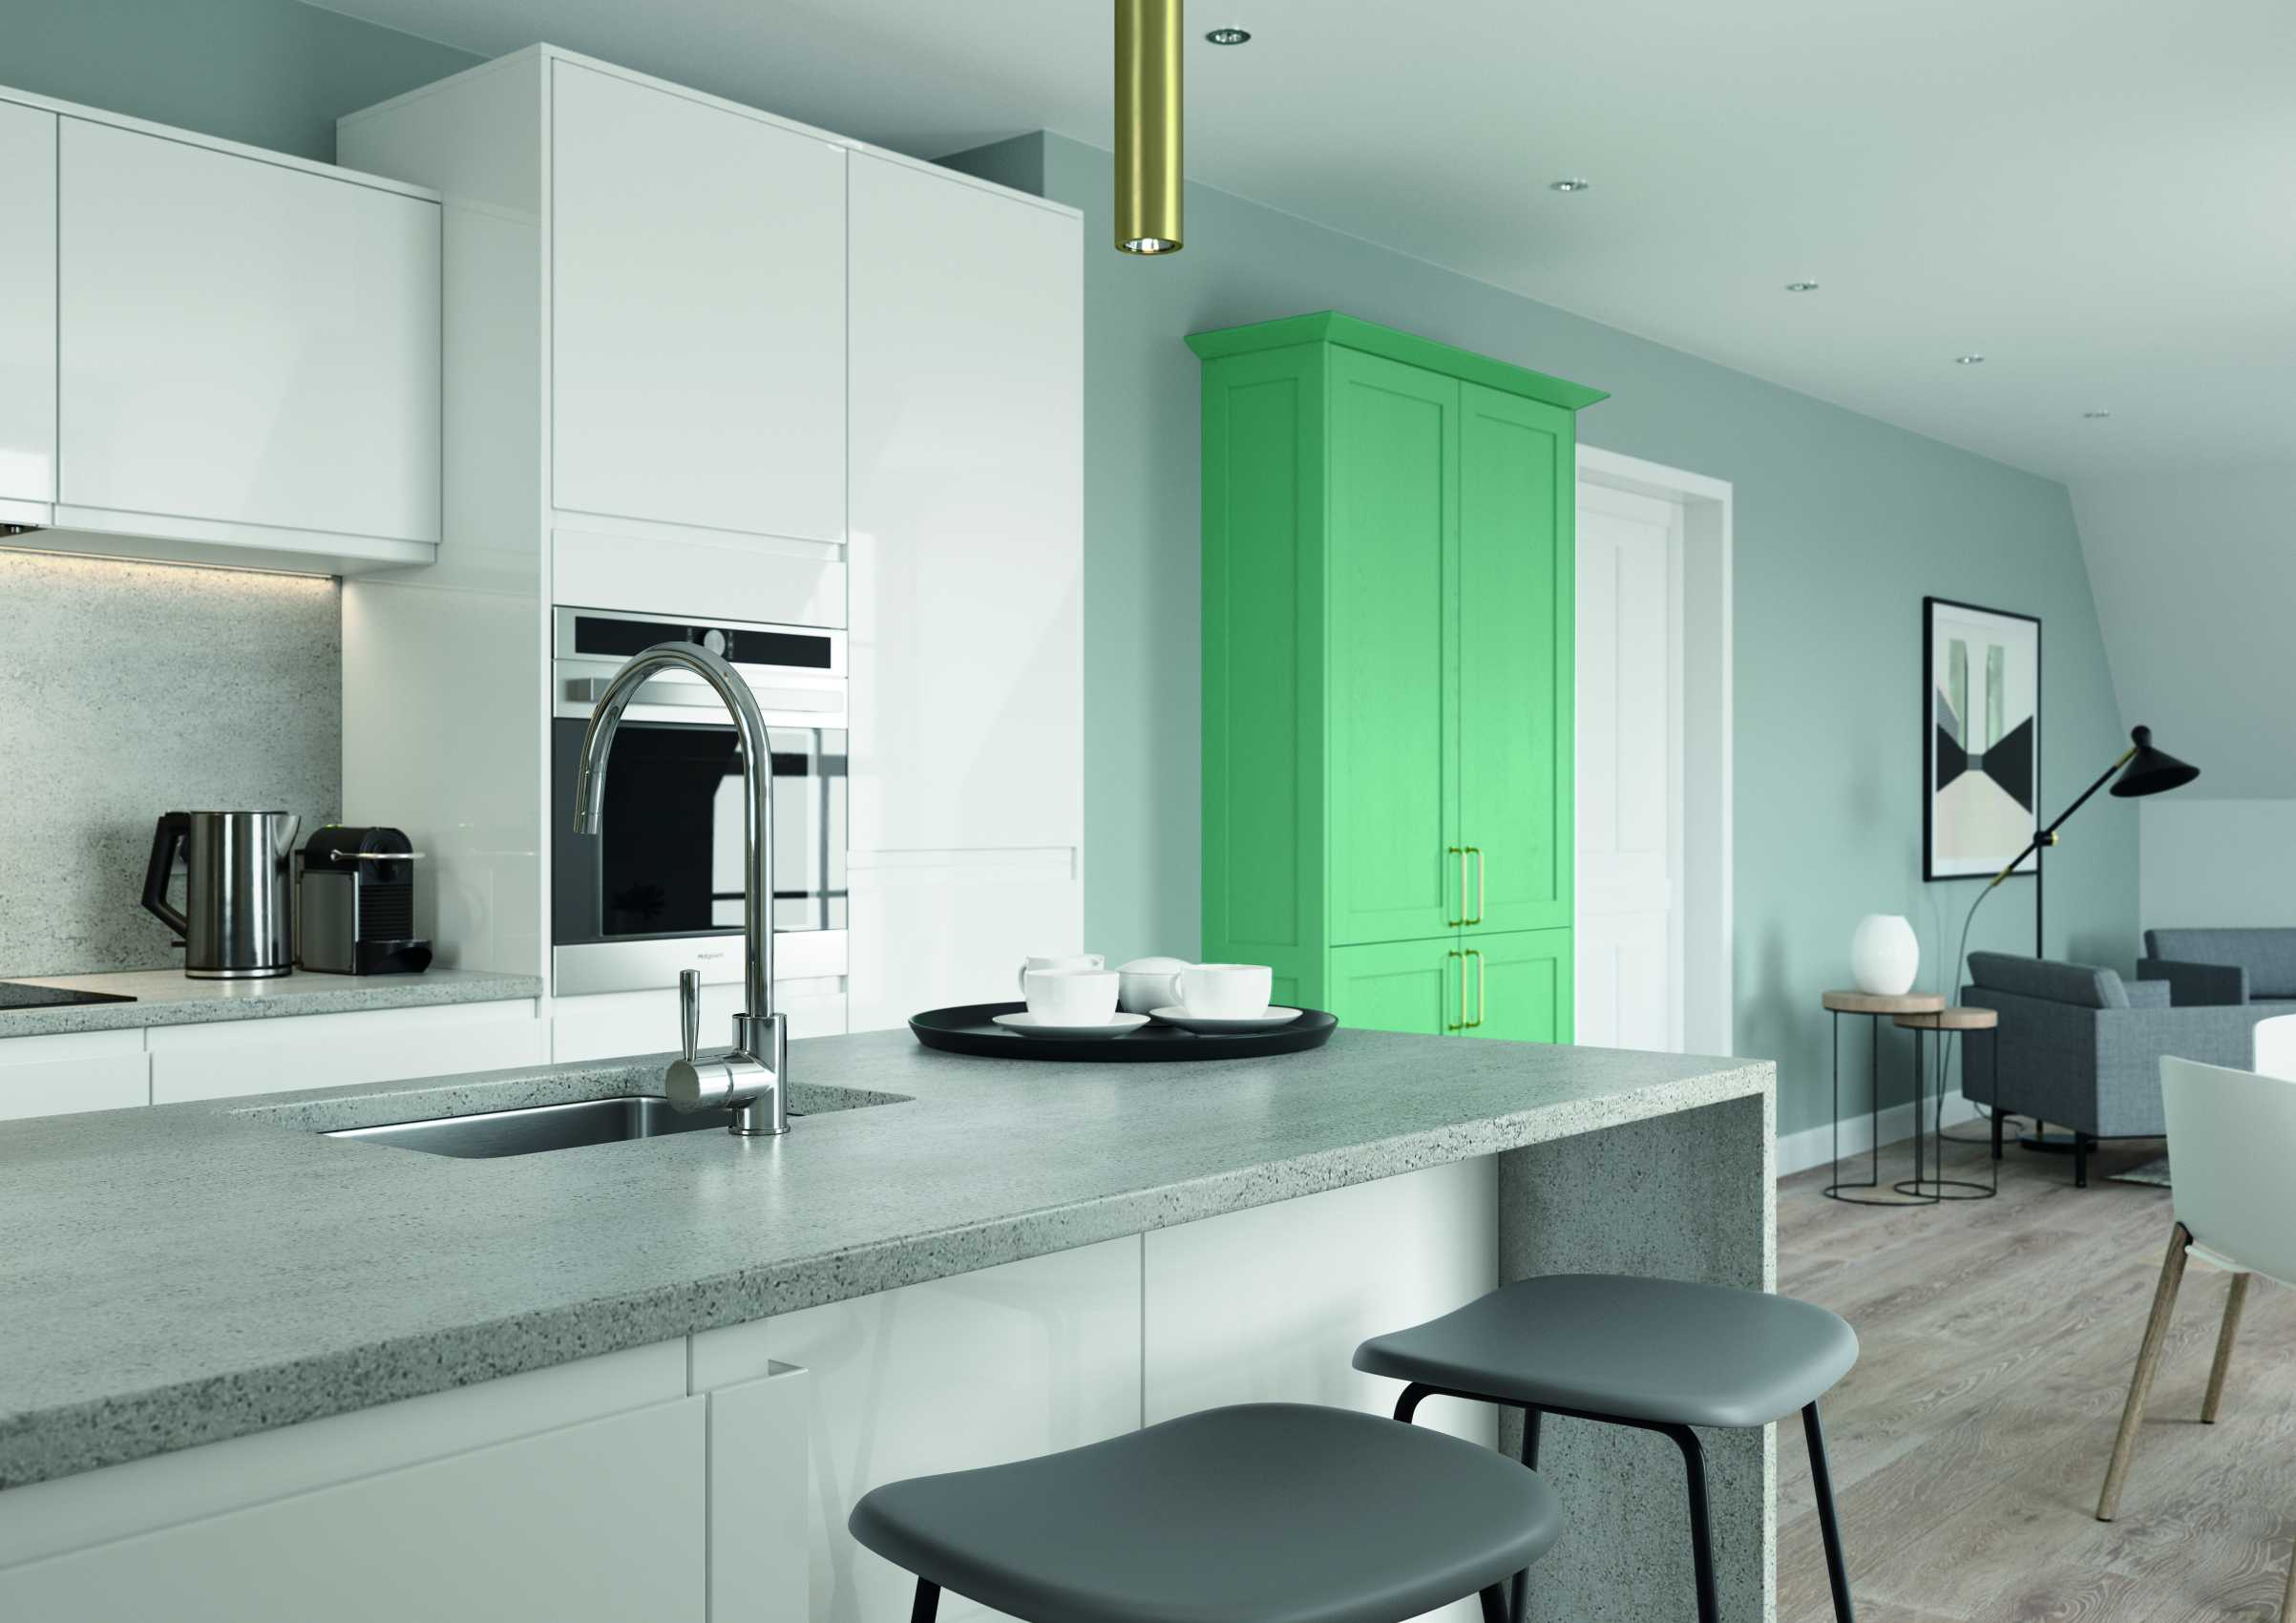 gloss white and green handleless kitchen fridge and oven